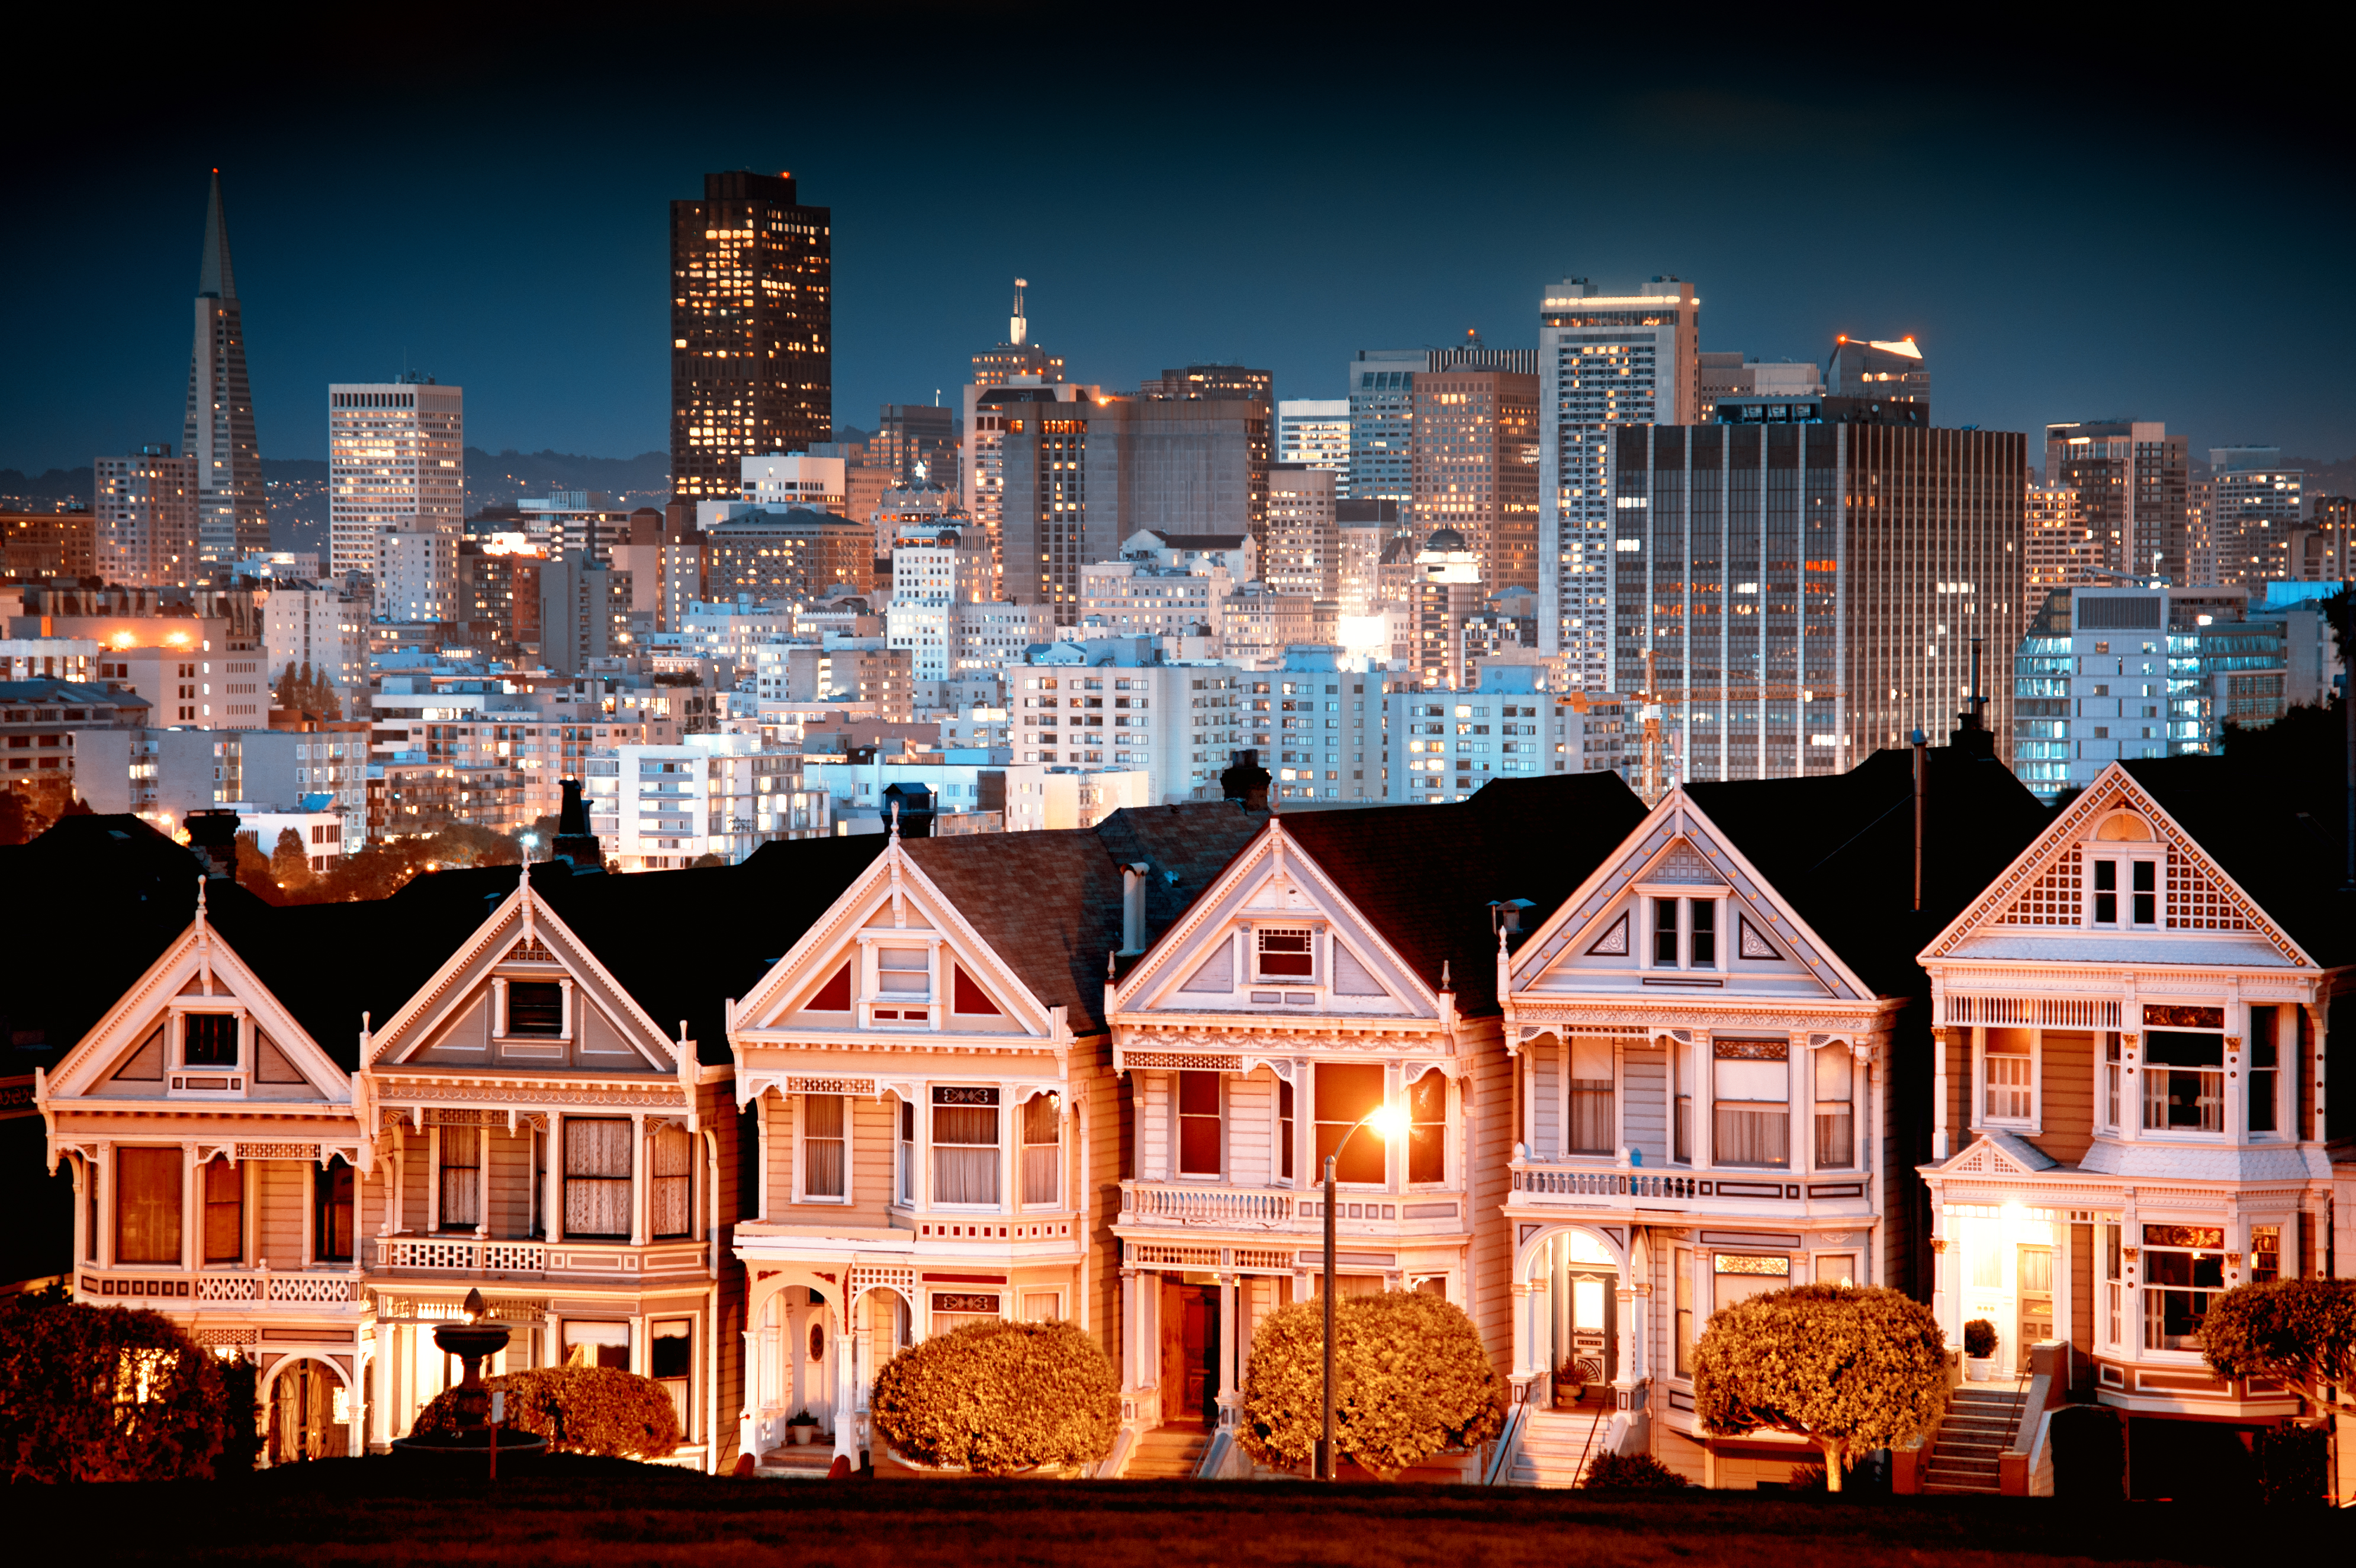 San francisco landlord raised rent by an additional 4 800 - San francisco tourist information office ...